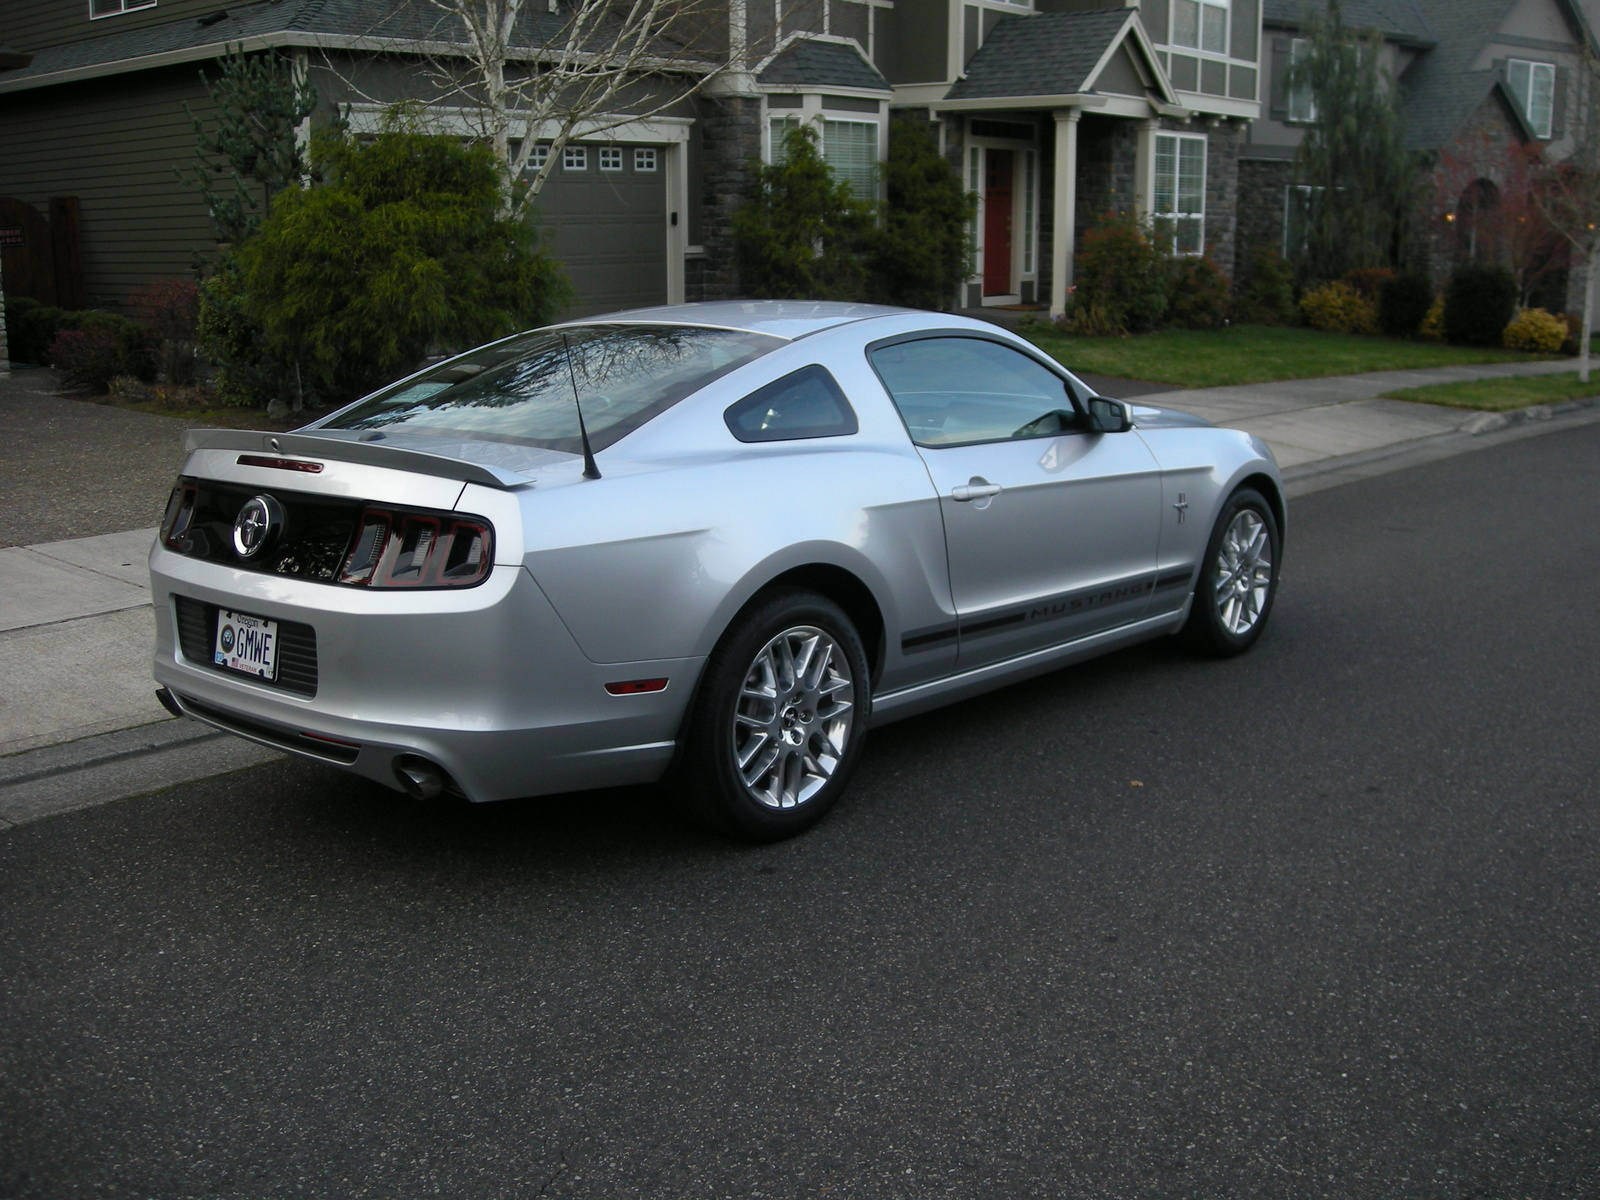 2014 ford mustang pictures cargurus. Black Bedroom Furniture Sets. Home Design Ideas